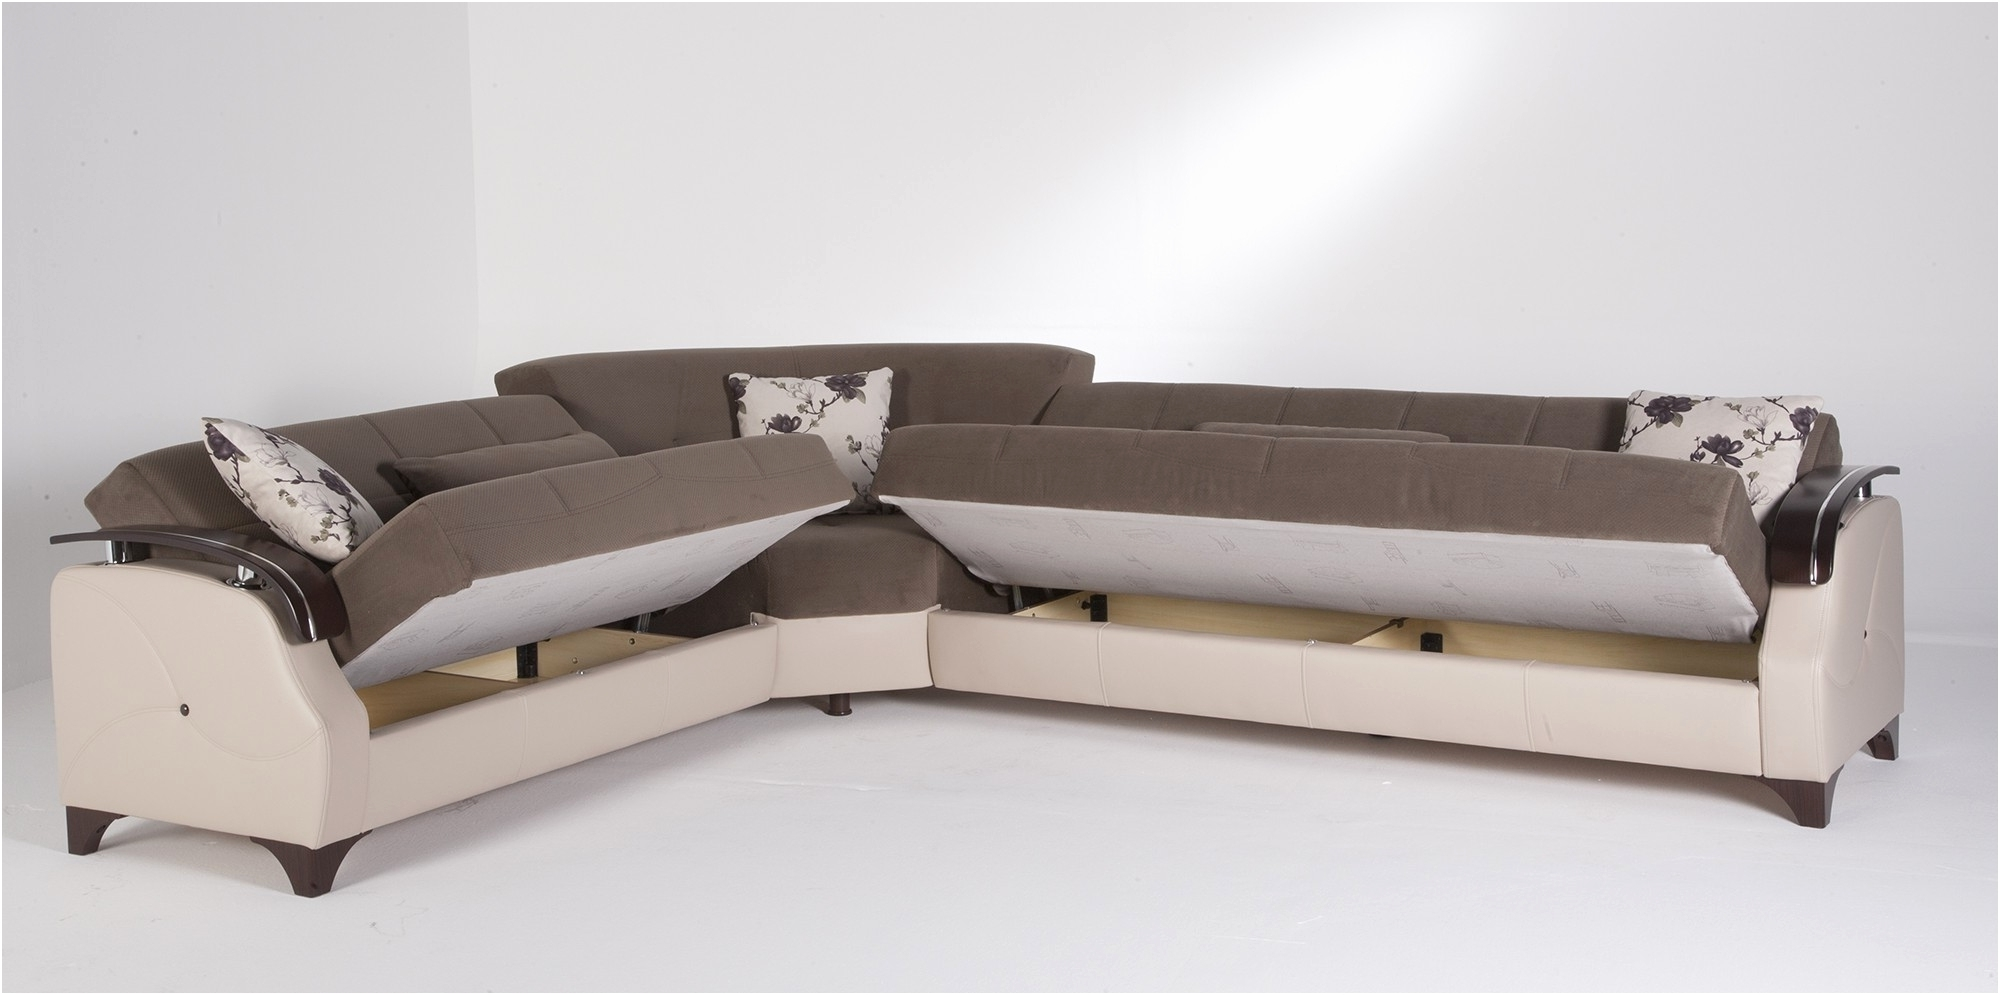 Recent Small Modular Sofas Throughout Living Room : Modular Sofas For Small Spaces Space Saving Dining (View 14 of 20)